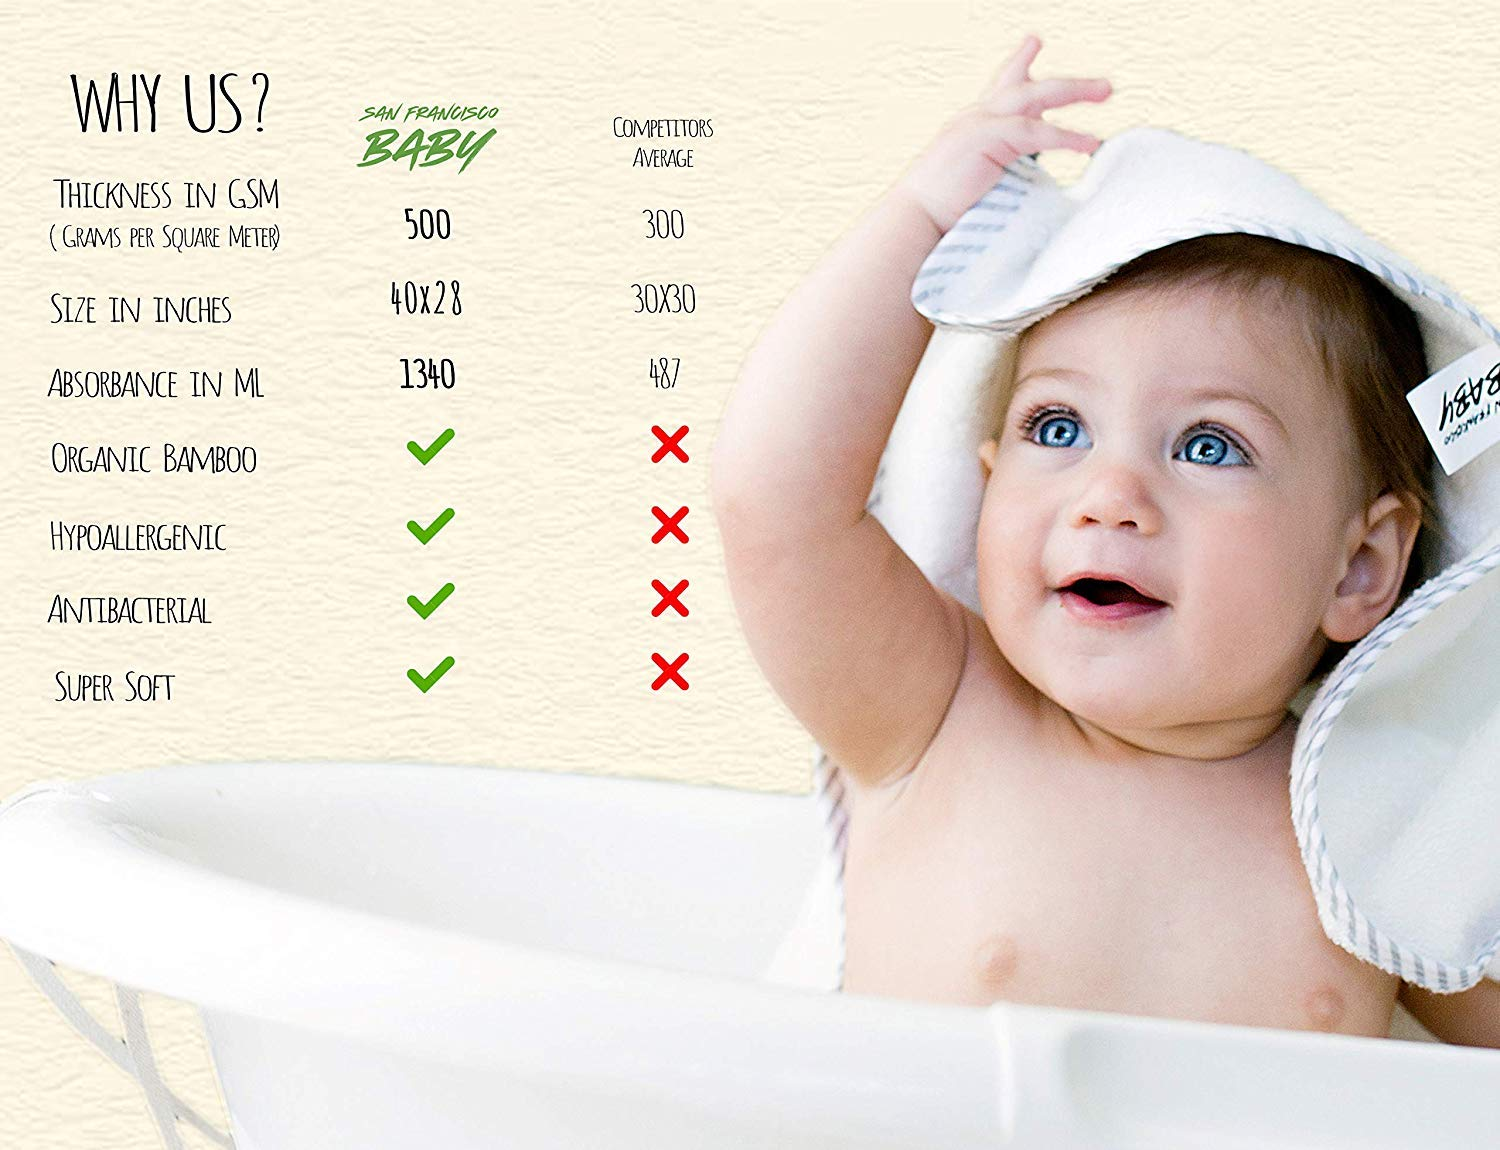 Toddlers Hypoallergenic Organic Bamboo Hooded Baby Towel Hooded Bath Towels with Ears for Babies Pink by San Francisco Baby Large Baby Towel Perfect Baby Shower Gift for Boys and Girls Soft